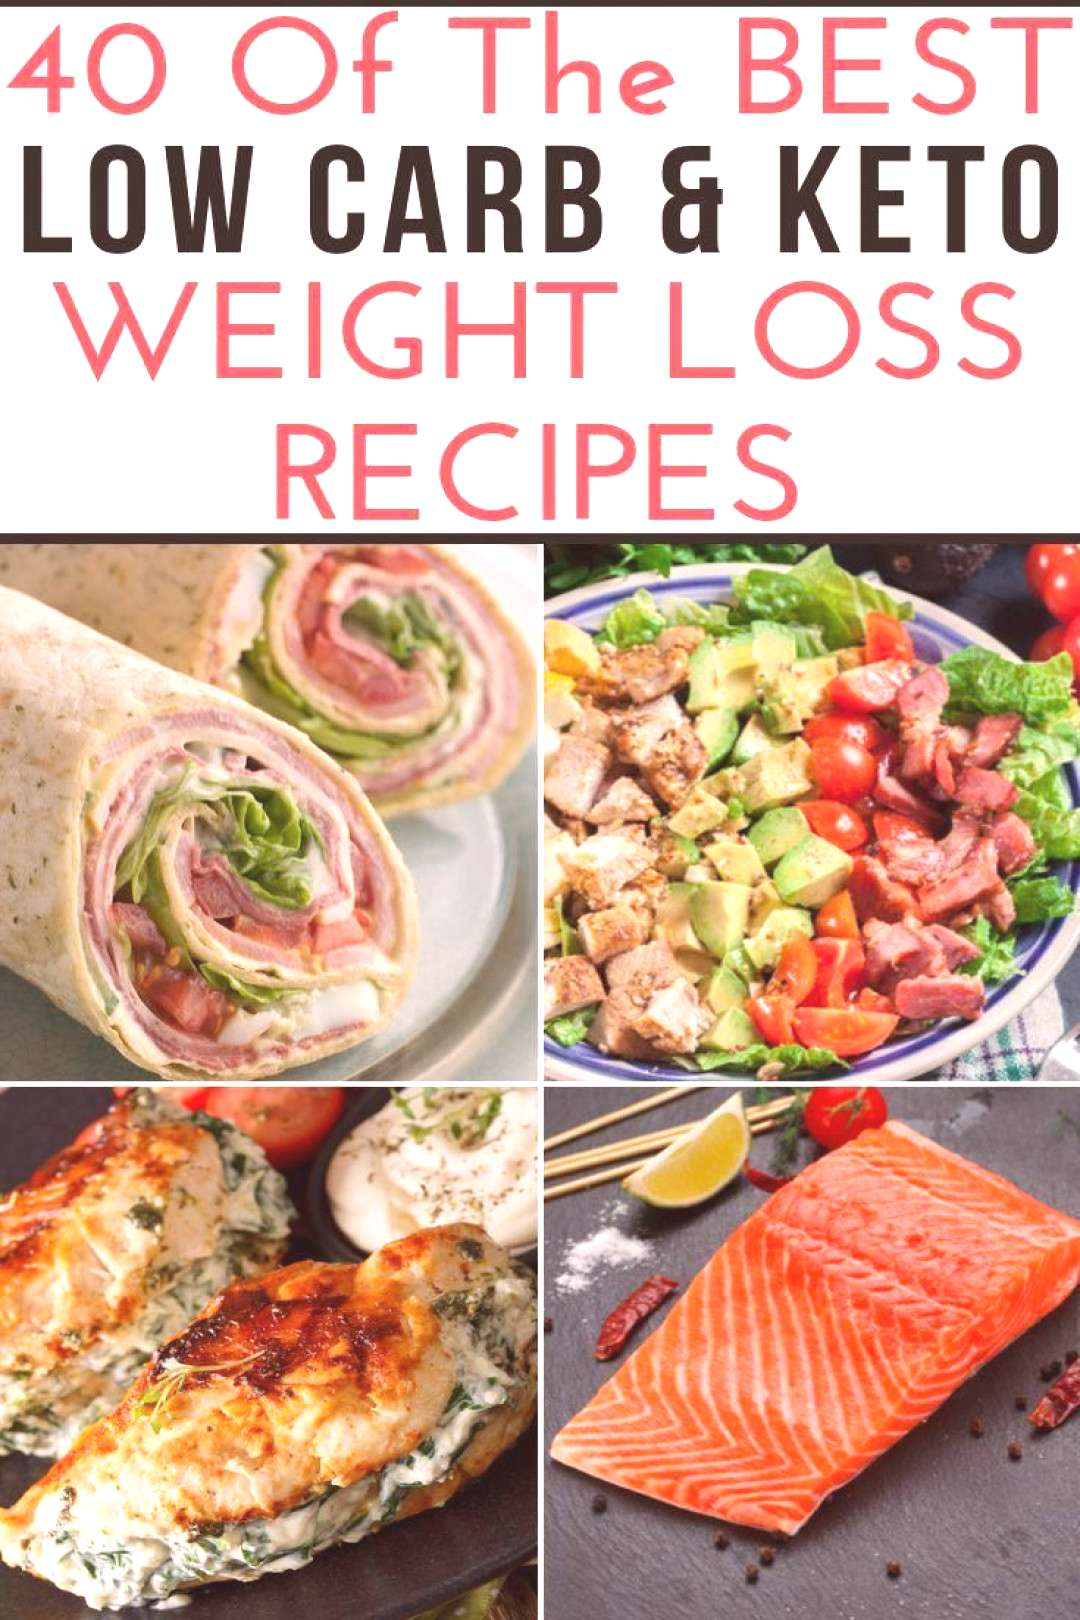 These low carb recipes will jumpstart your weight loss efforts and make meal planning easy!